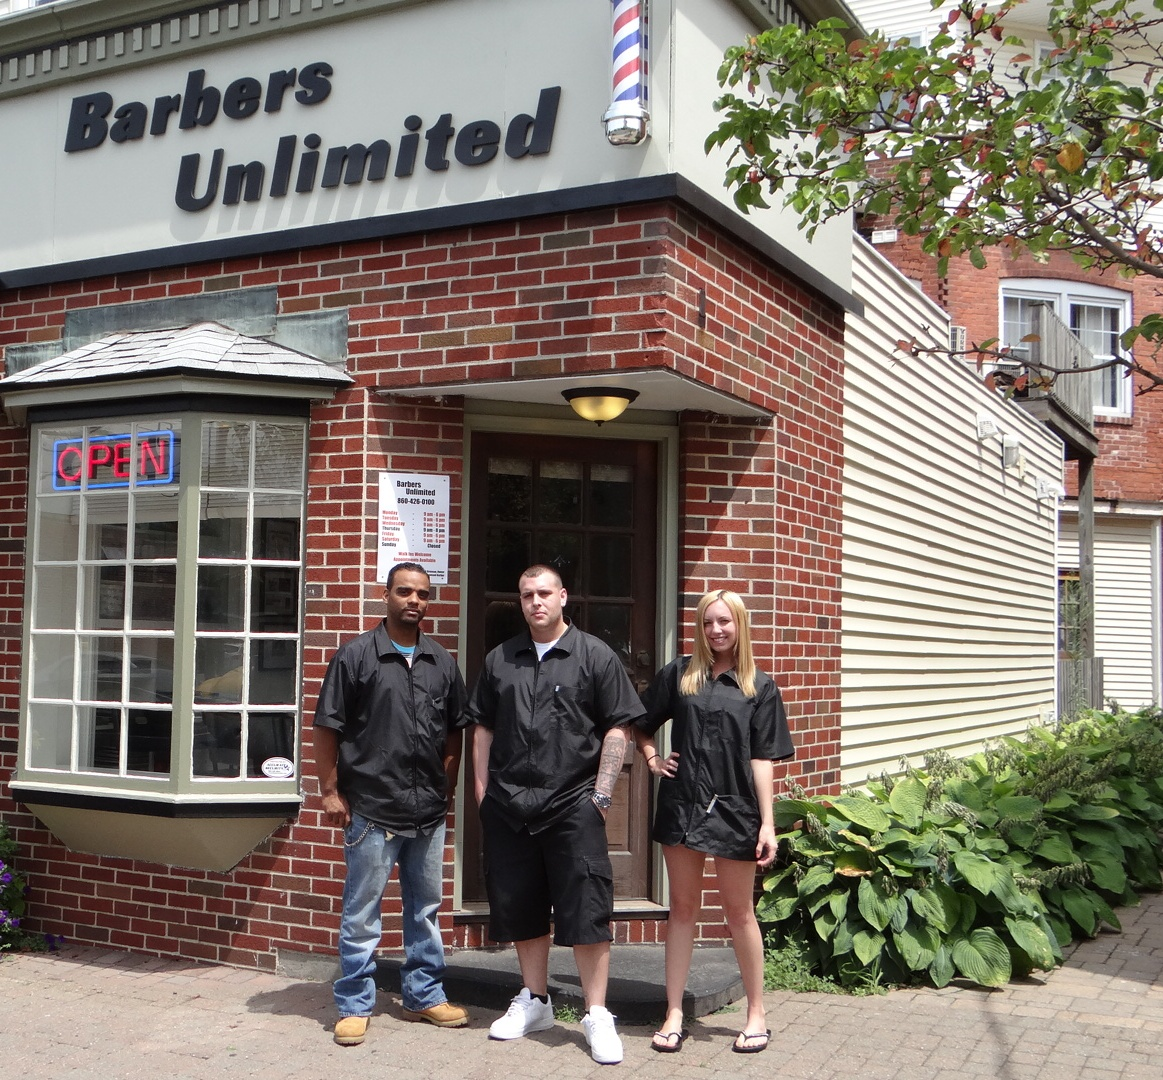 Barber Unlimited : The Barber Shop Team at Barbers Unlimited in Southington CT 06489